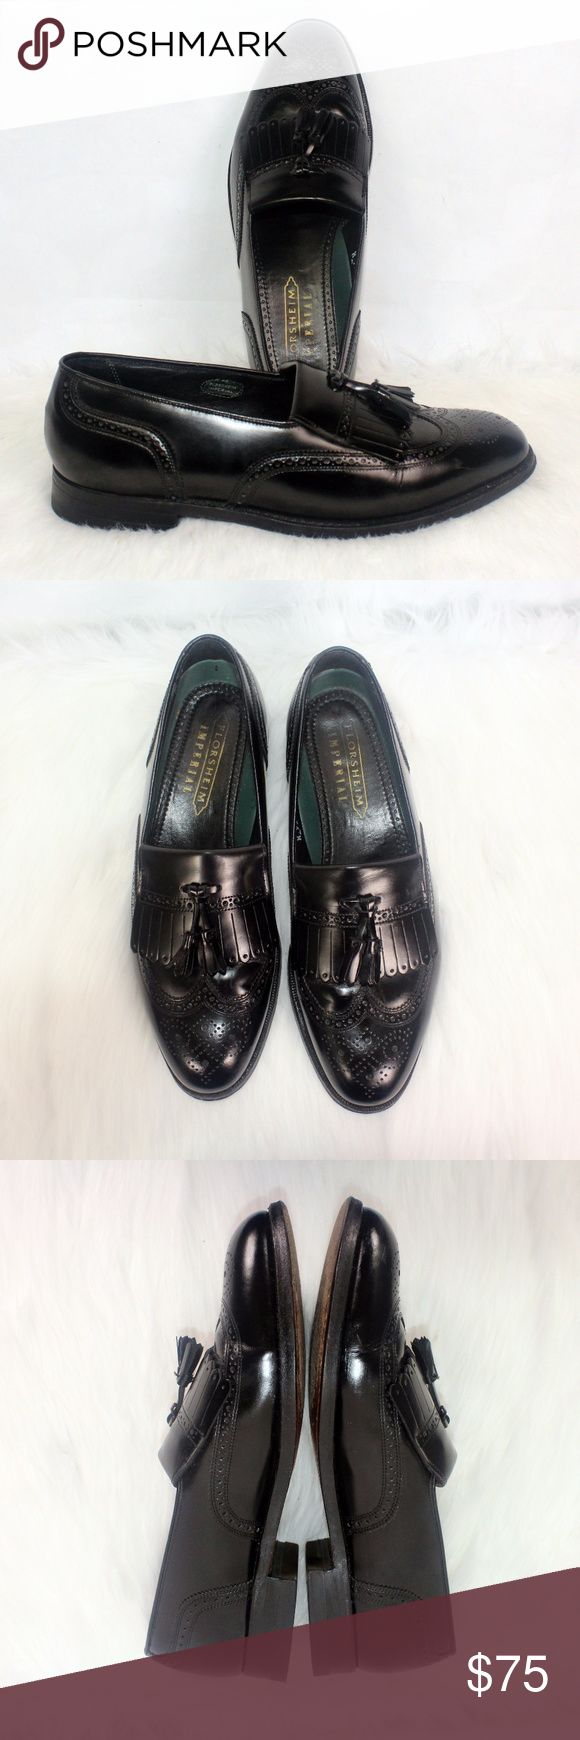 FLORSHEIM IMPERIAL VTG Mens Tassel Wingtip Shine L FLORSHEIM IMPERIAL VTG Mens Tassel Wingtip Shine Leather Shoe 9 1/2 D 92257 Kilt Widest Part Of Sole Bed 4 Inches Made In USA See Photos to Rate Condition  Great Shine Florsheim Shoes Oxfords & Derbys